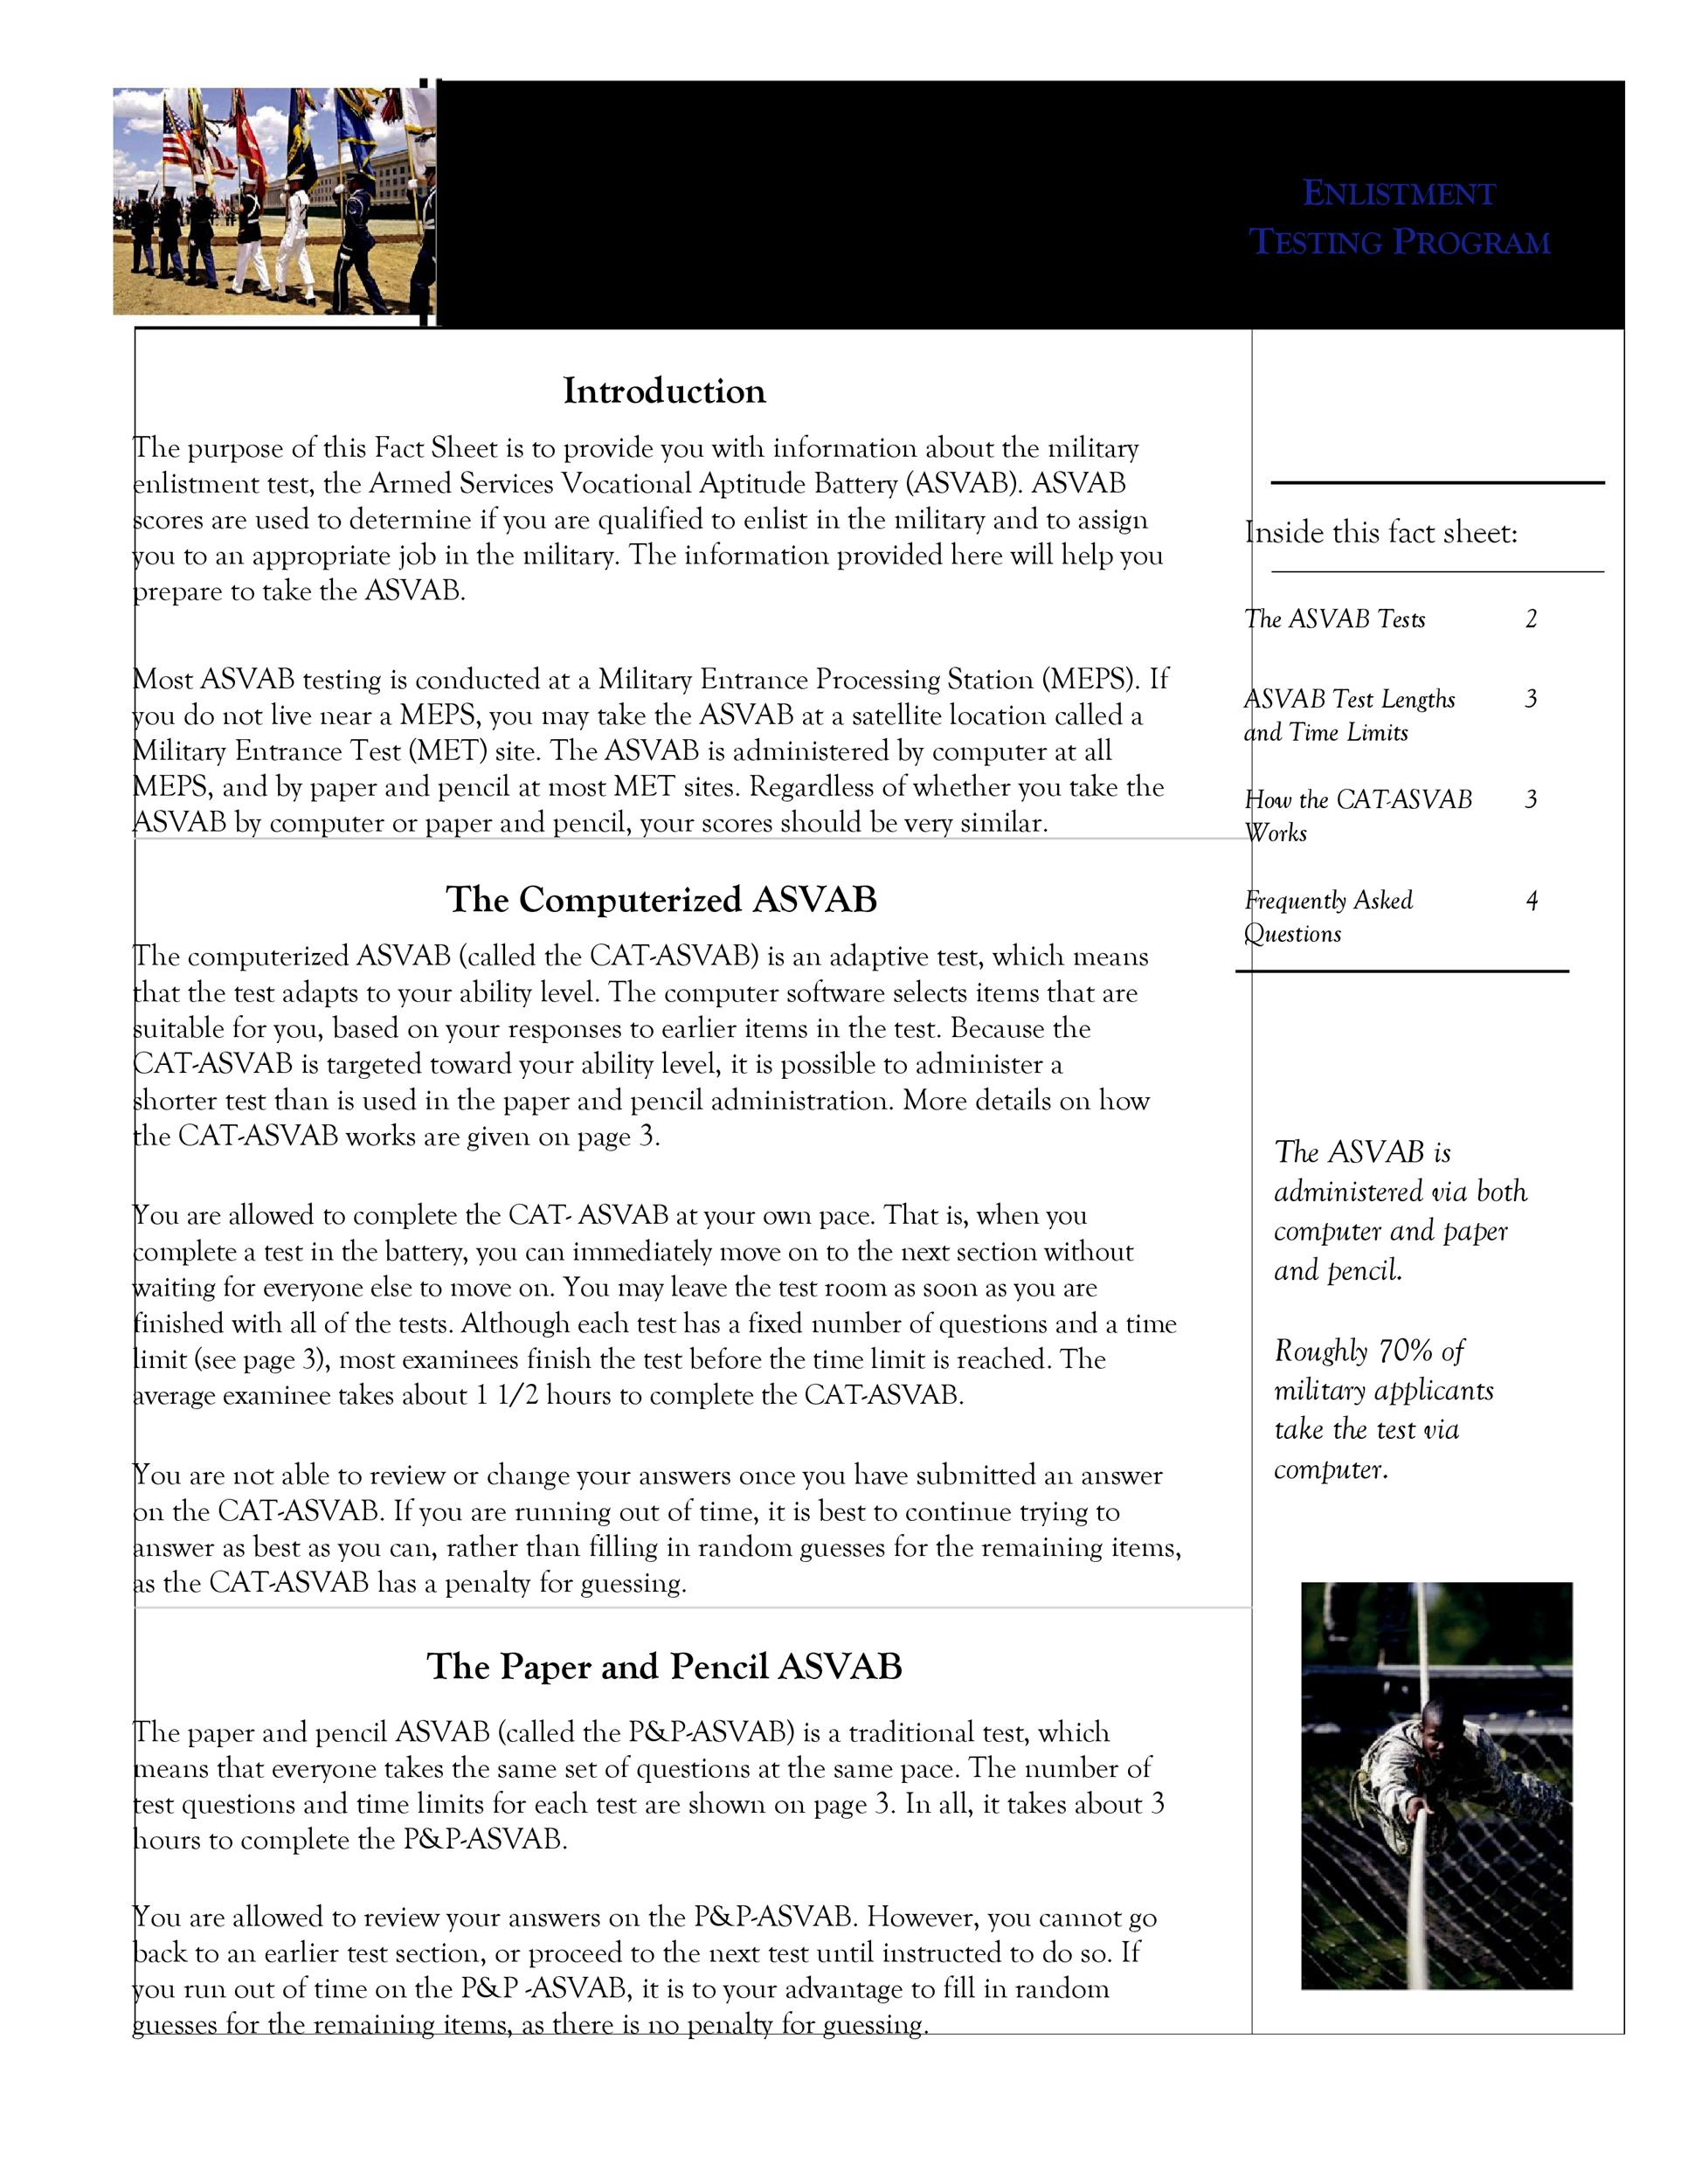 Free Fact sheet Template 26